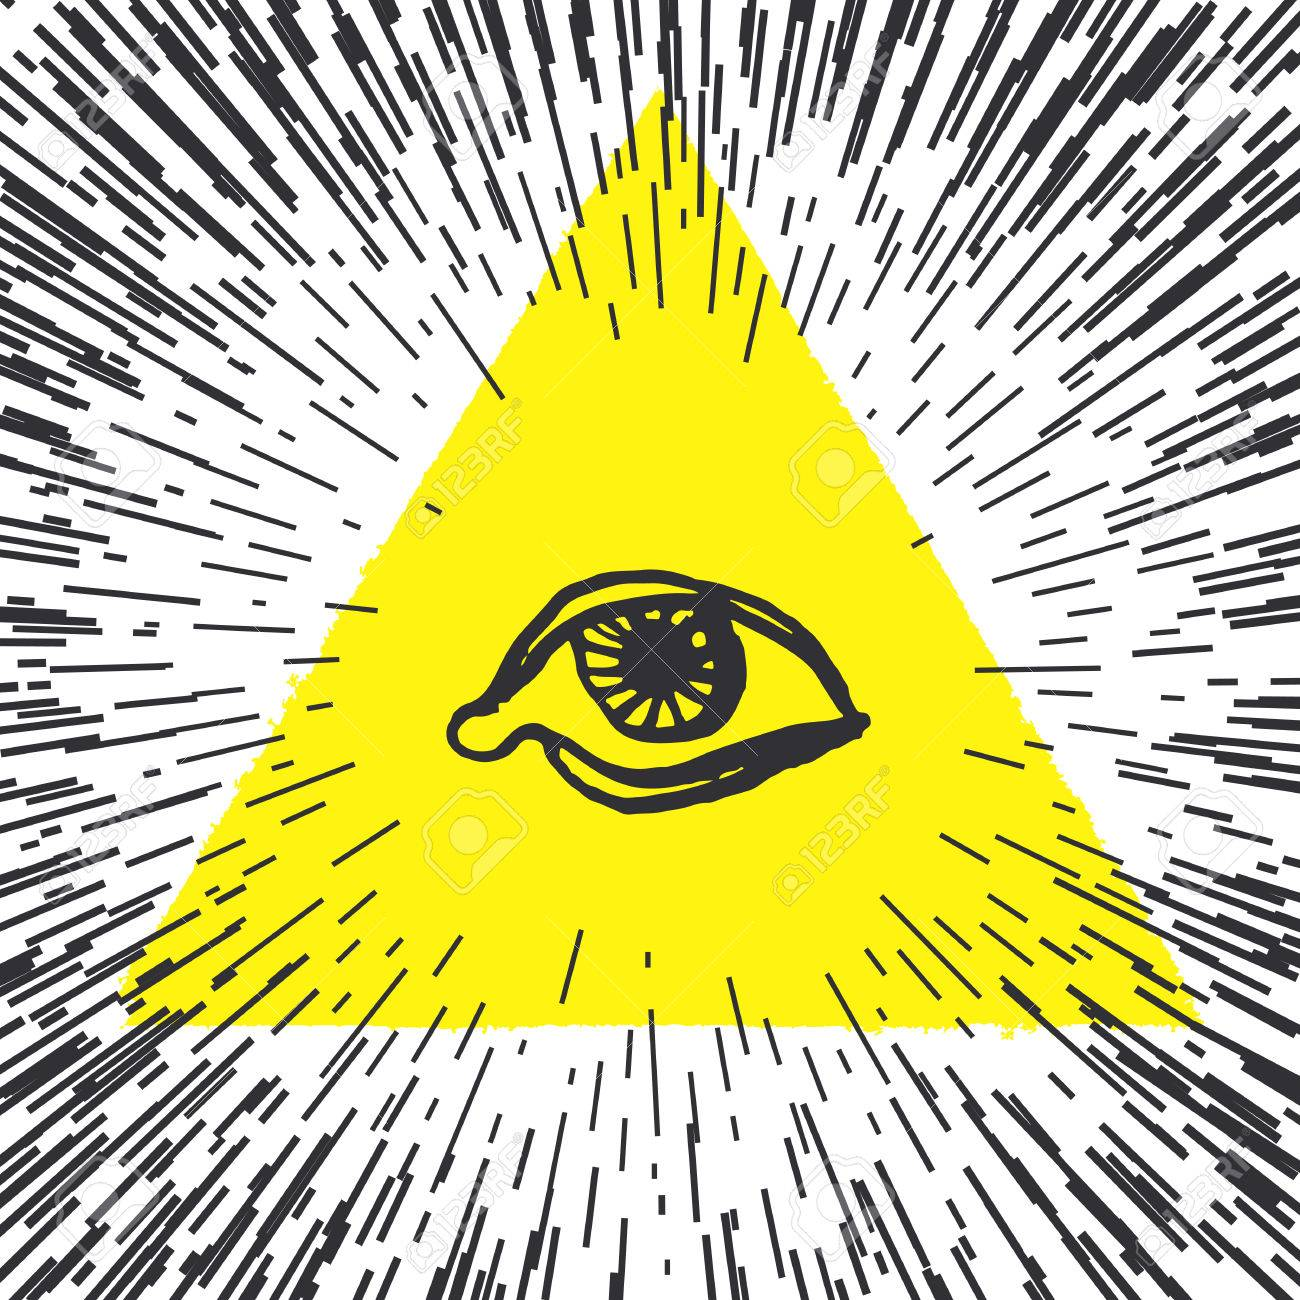 All Seeing Eye Pyramid Illustration Freemason And Spiritual